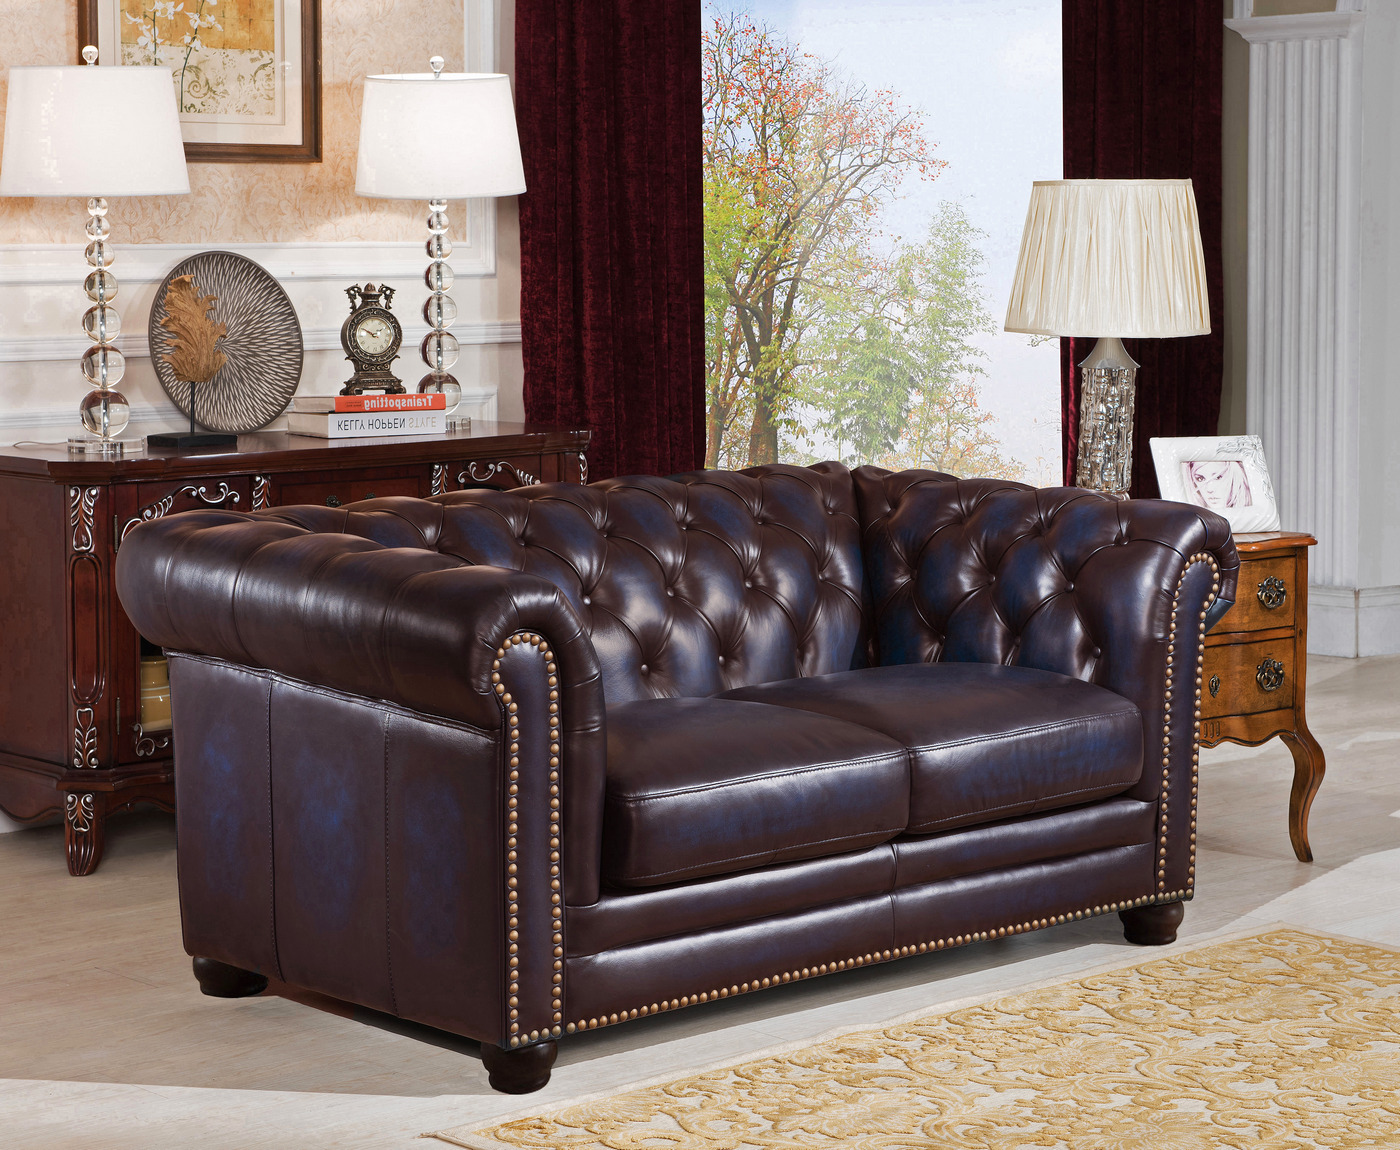 Dynasty 100 Genuine Leather Chesterfield 3 Pc Sofa Set In